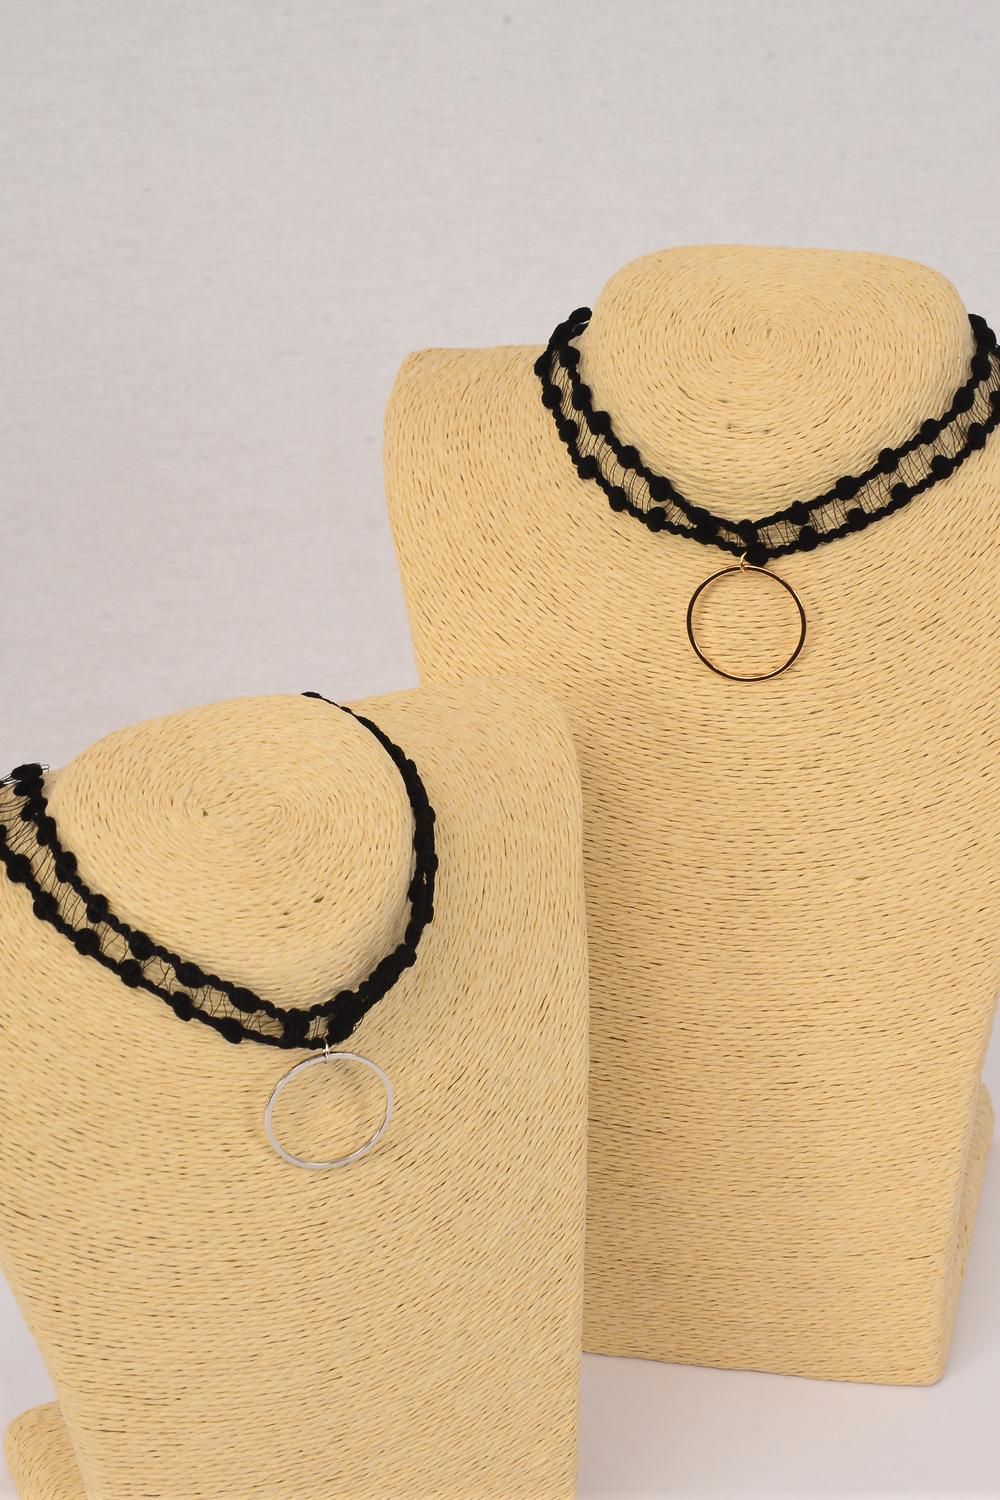 "Necklace Choker Lace Circle Pendant/DZ Width-1"",Size-14"" Extension Chain,6 Gold,6 Silver Asst,Display Card & OPP Bag & UPC Code"